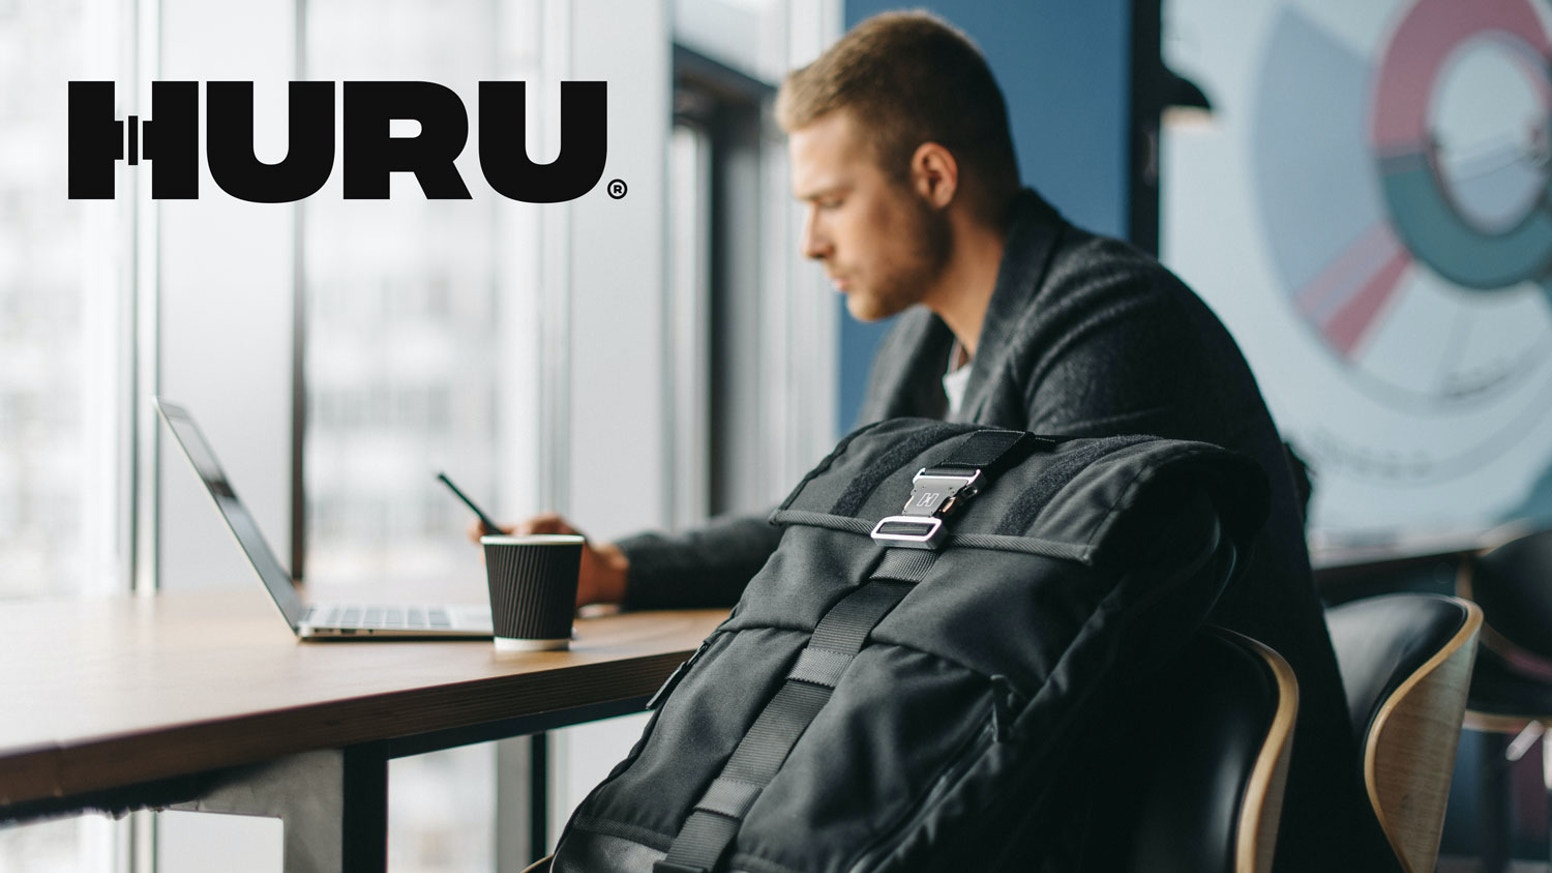 Built-in waist bag, rain hood for the owner and a lifetime warranty make HURU a smart and reliable companion for city and travel